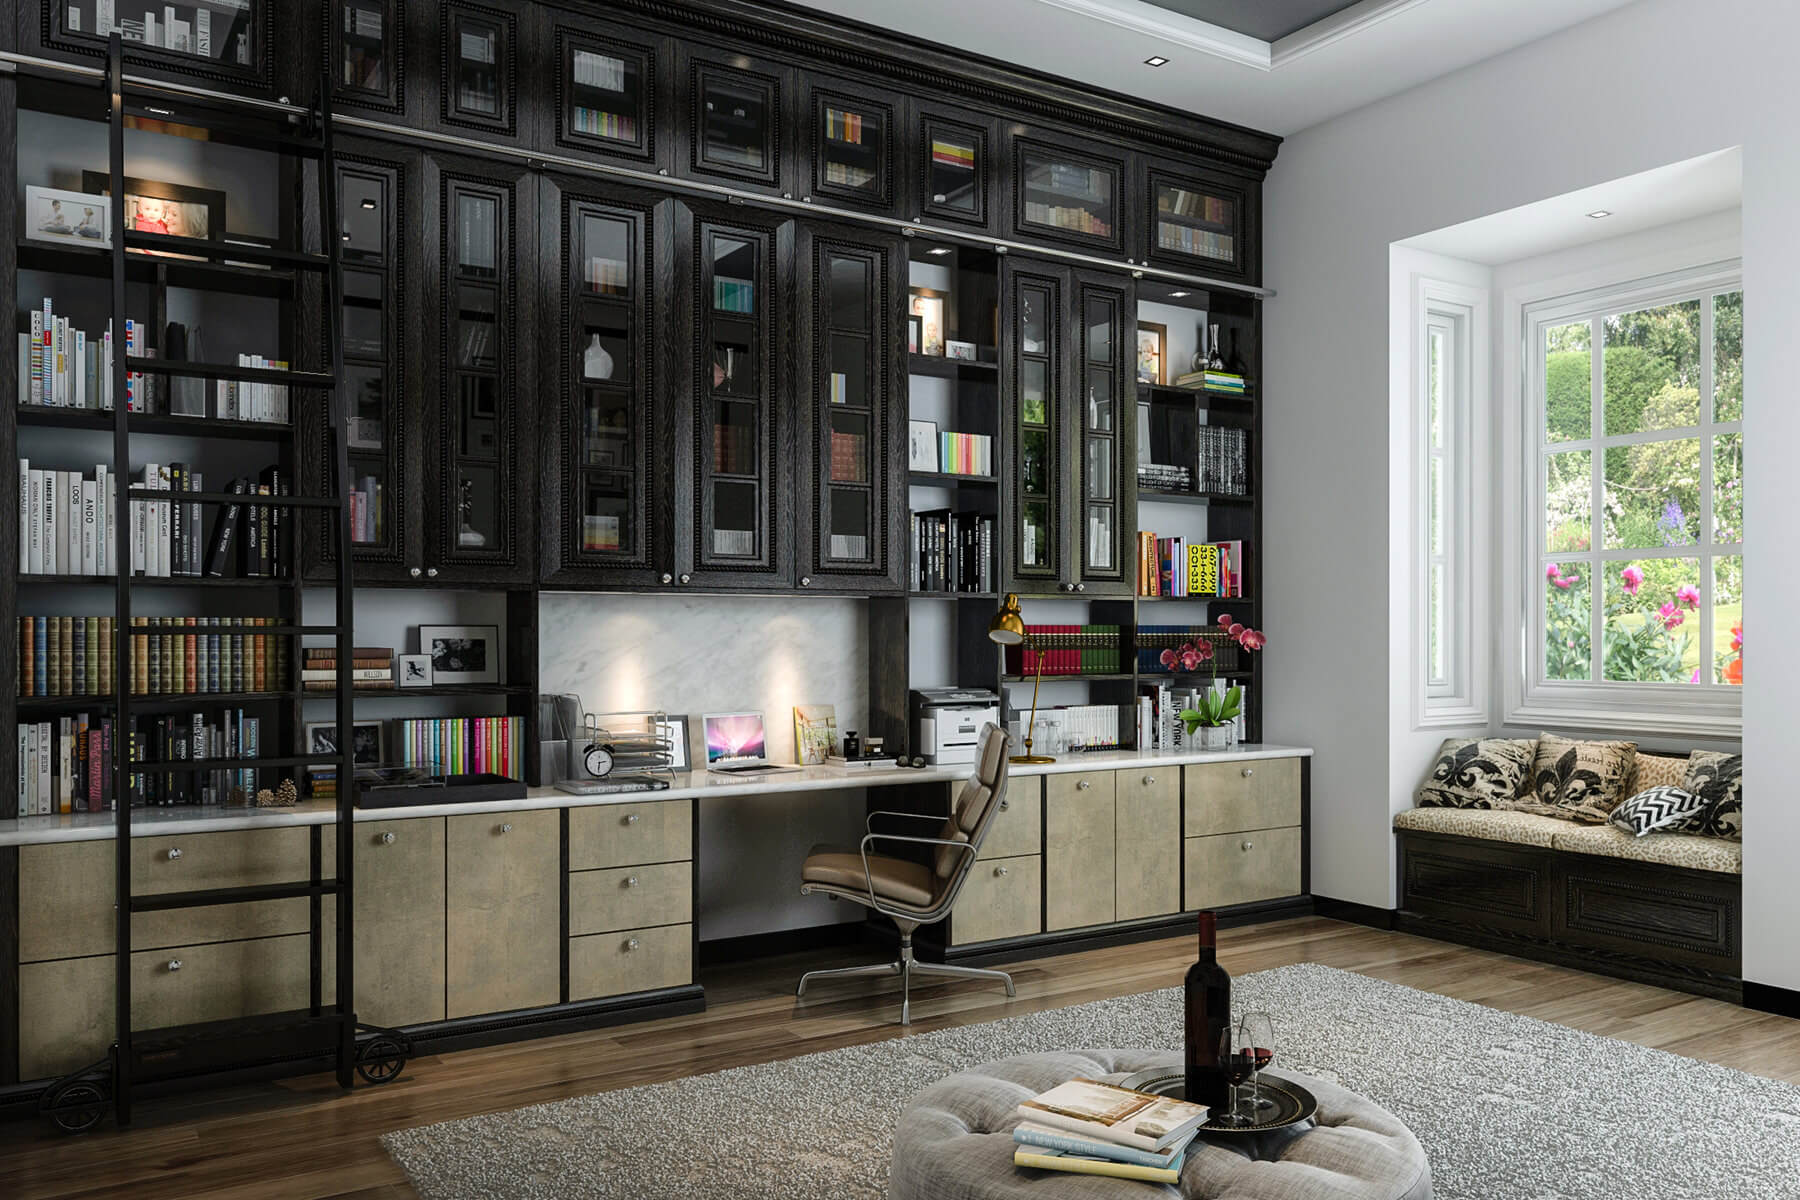 Home Office with Custom Built-In Bookshelves Spanning Entire Wall